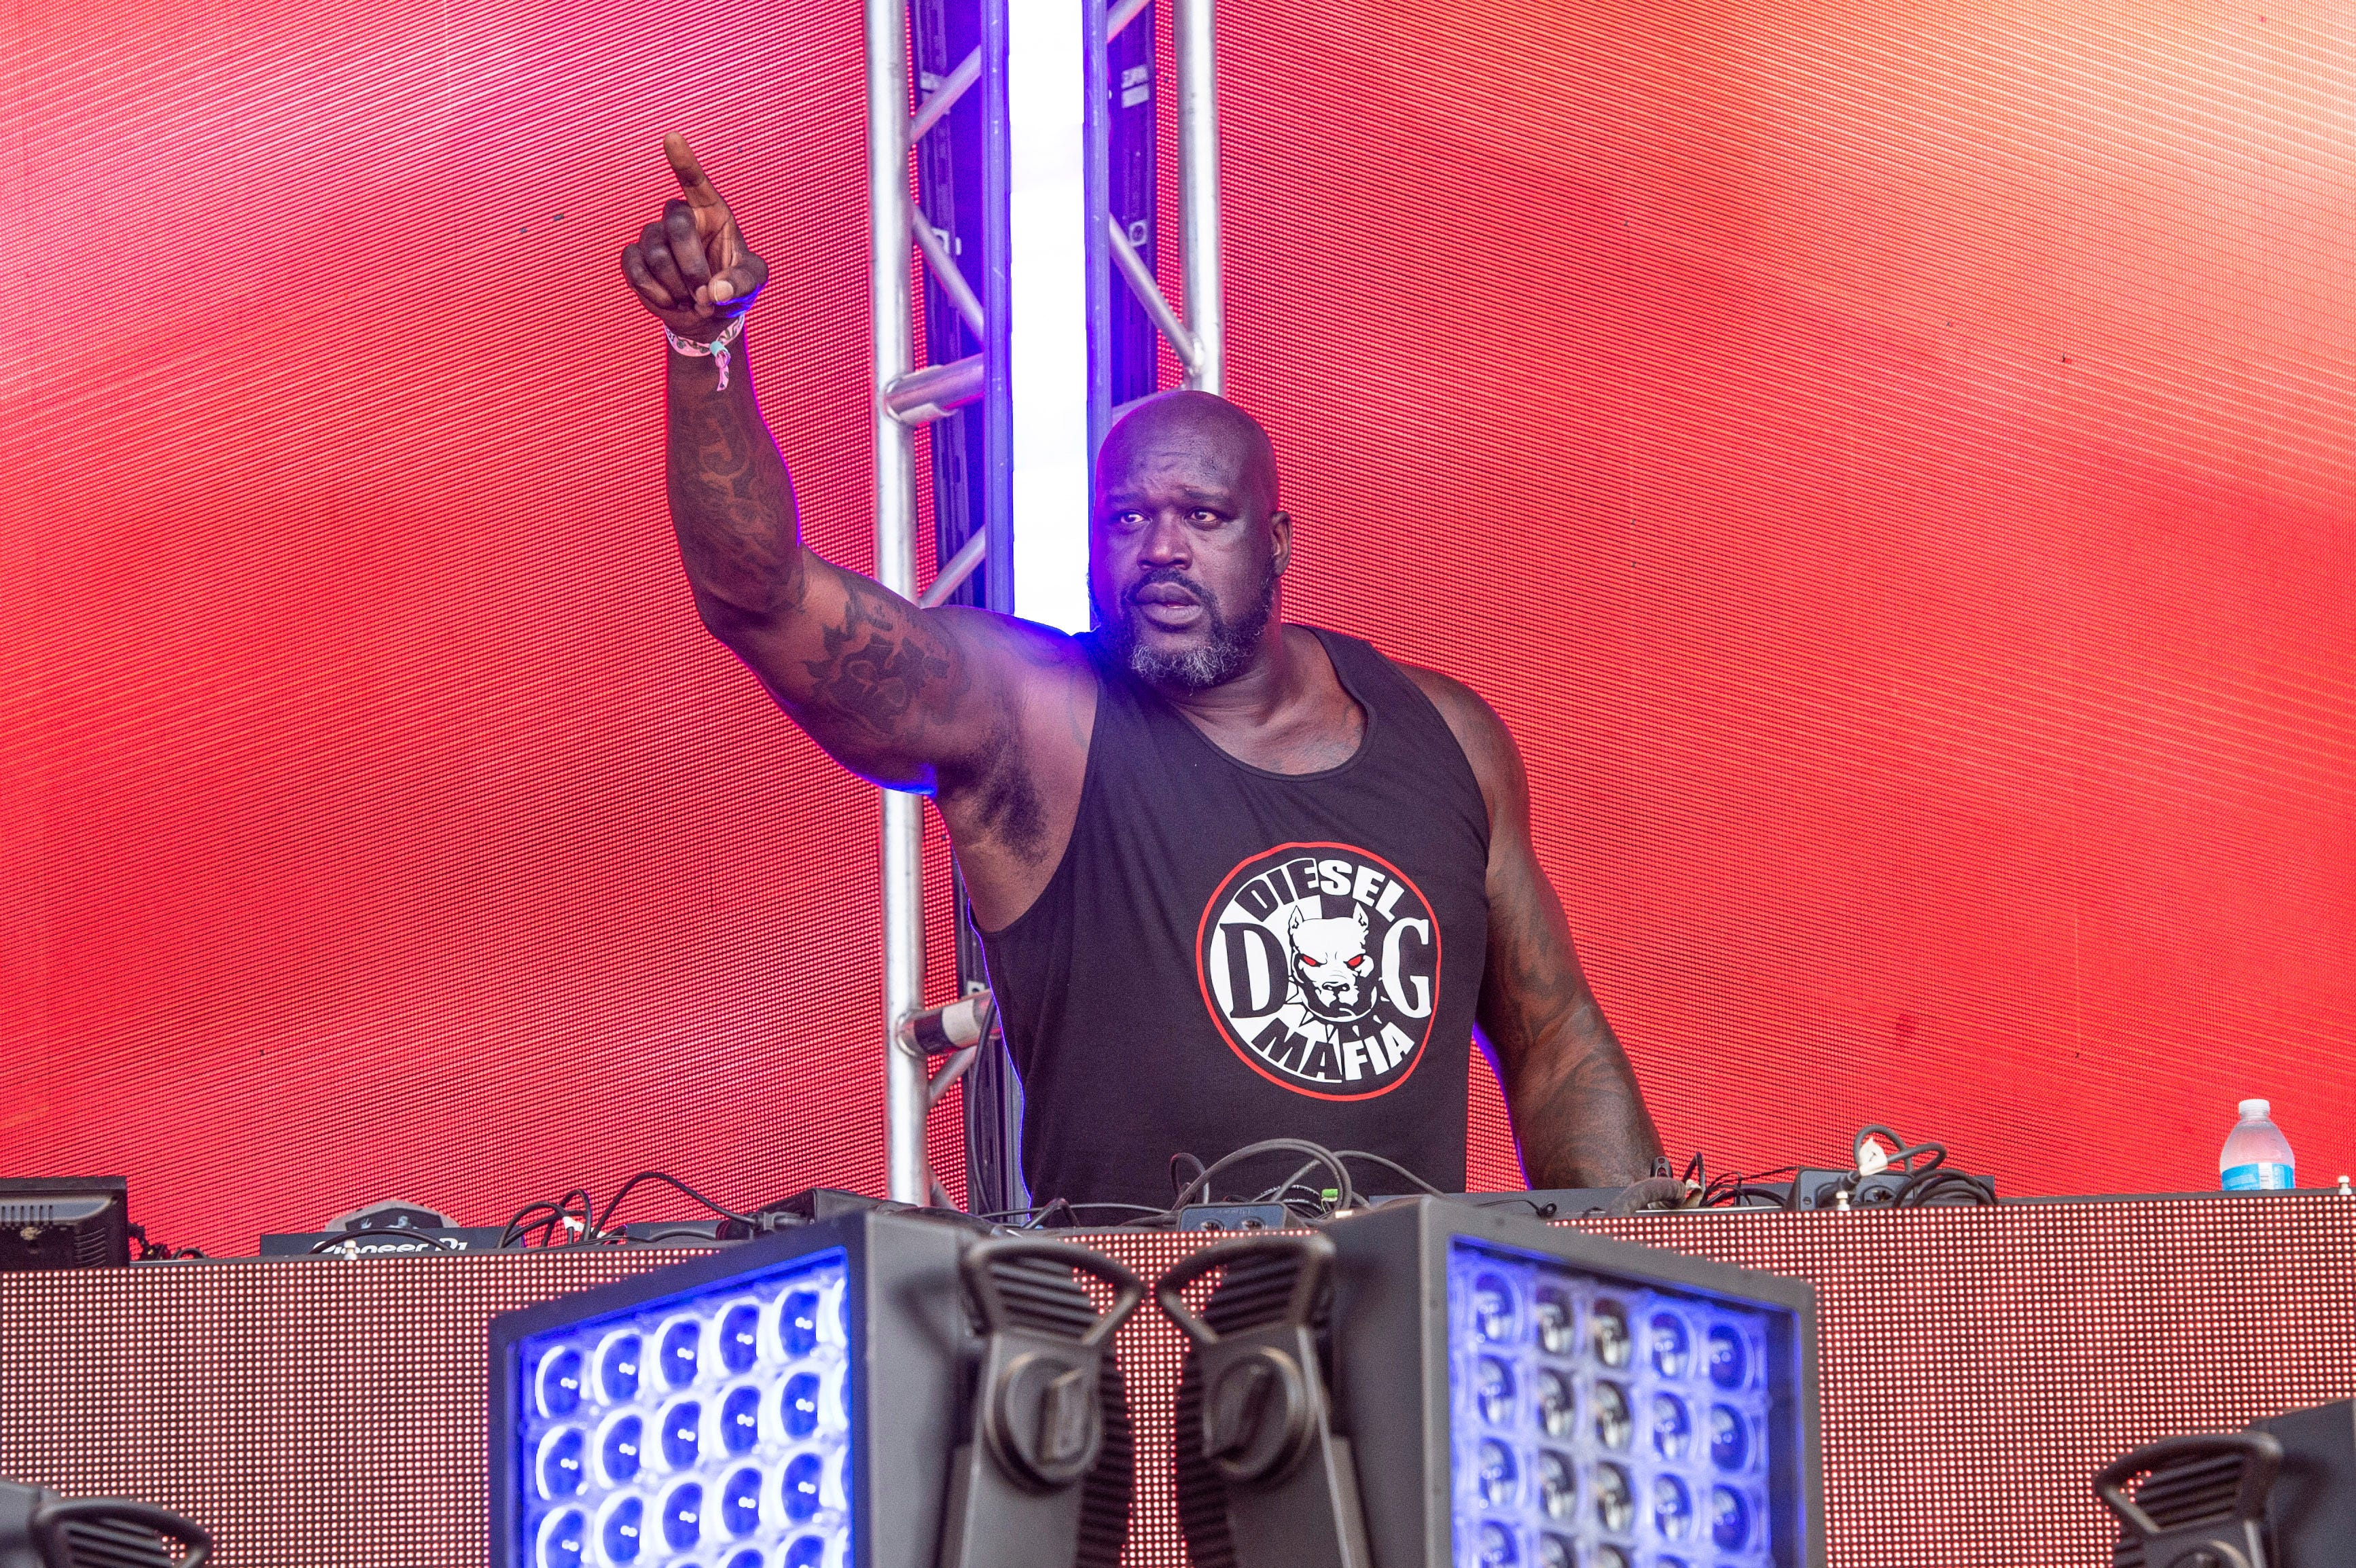 Latest Summerfest 2021 lineup announcements: Wilco, Brett Eldredge and Shaq (yes, that Shaq) at Miller Lite Oasis